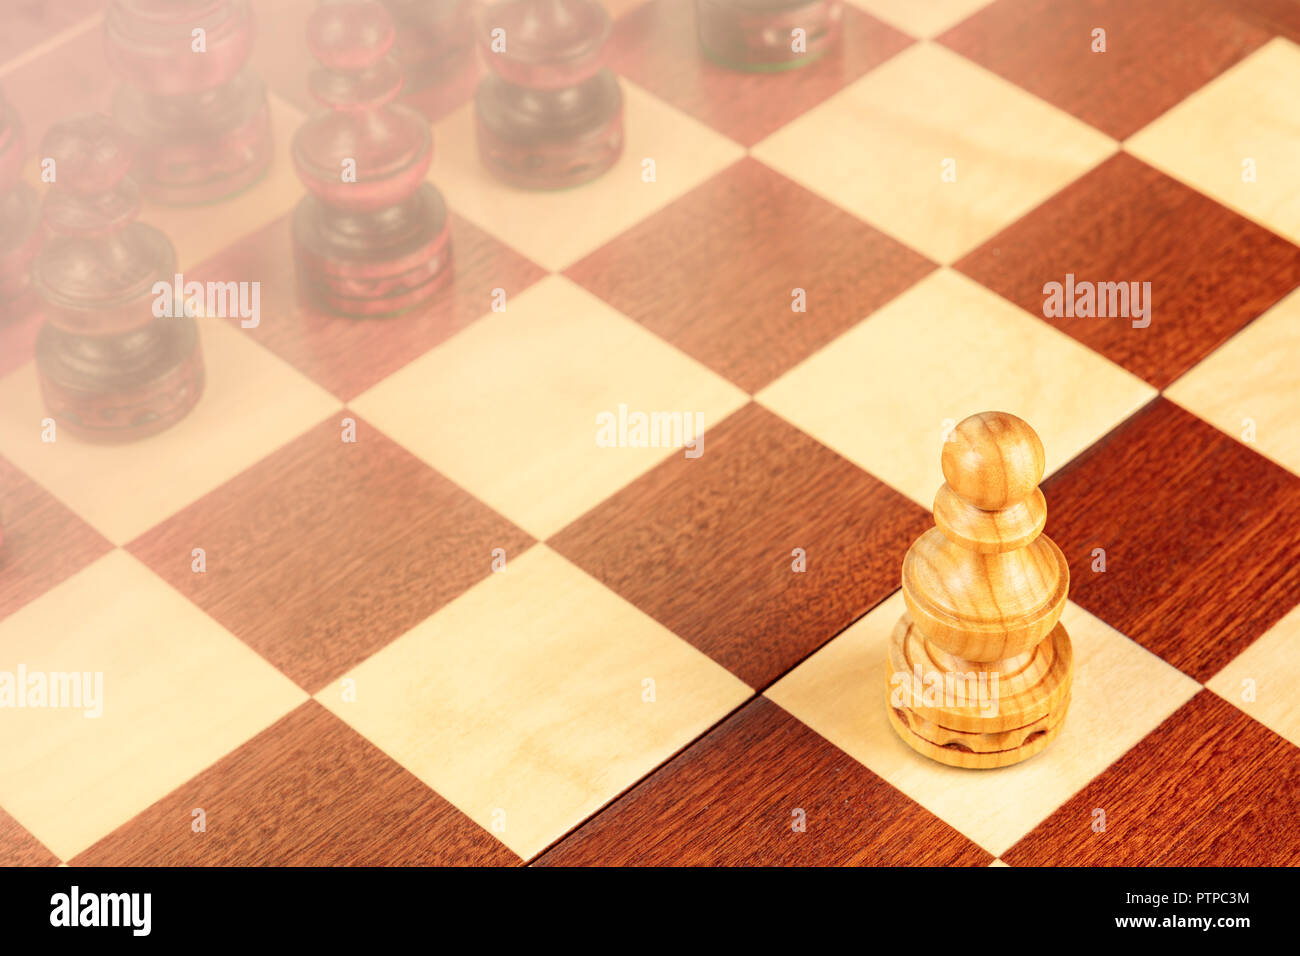 A pawn on a chessboard, a metaphor for the first step, with a background blurred for copy space - Stock Image